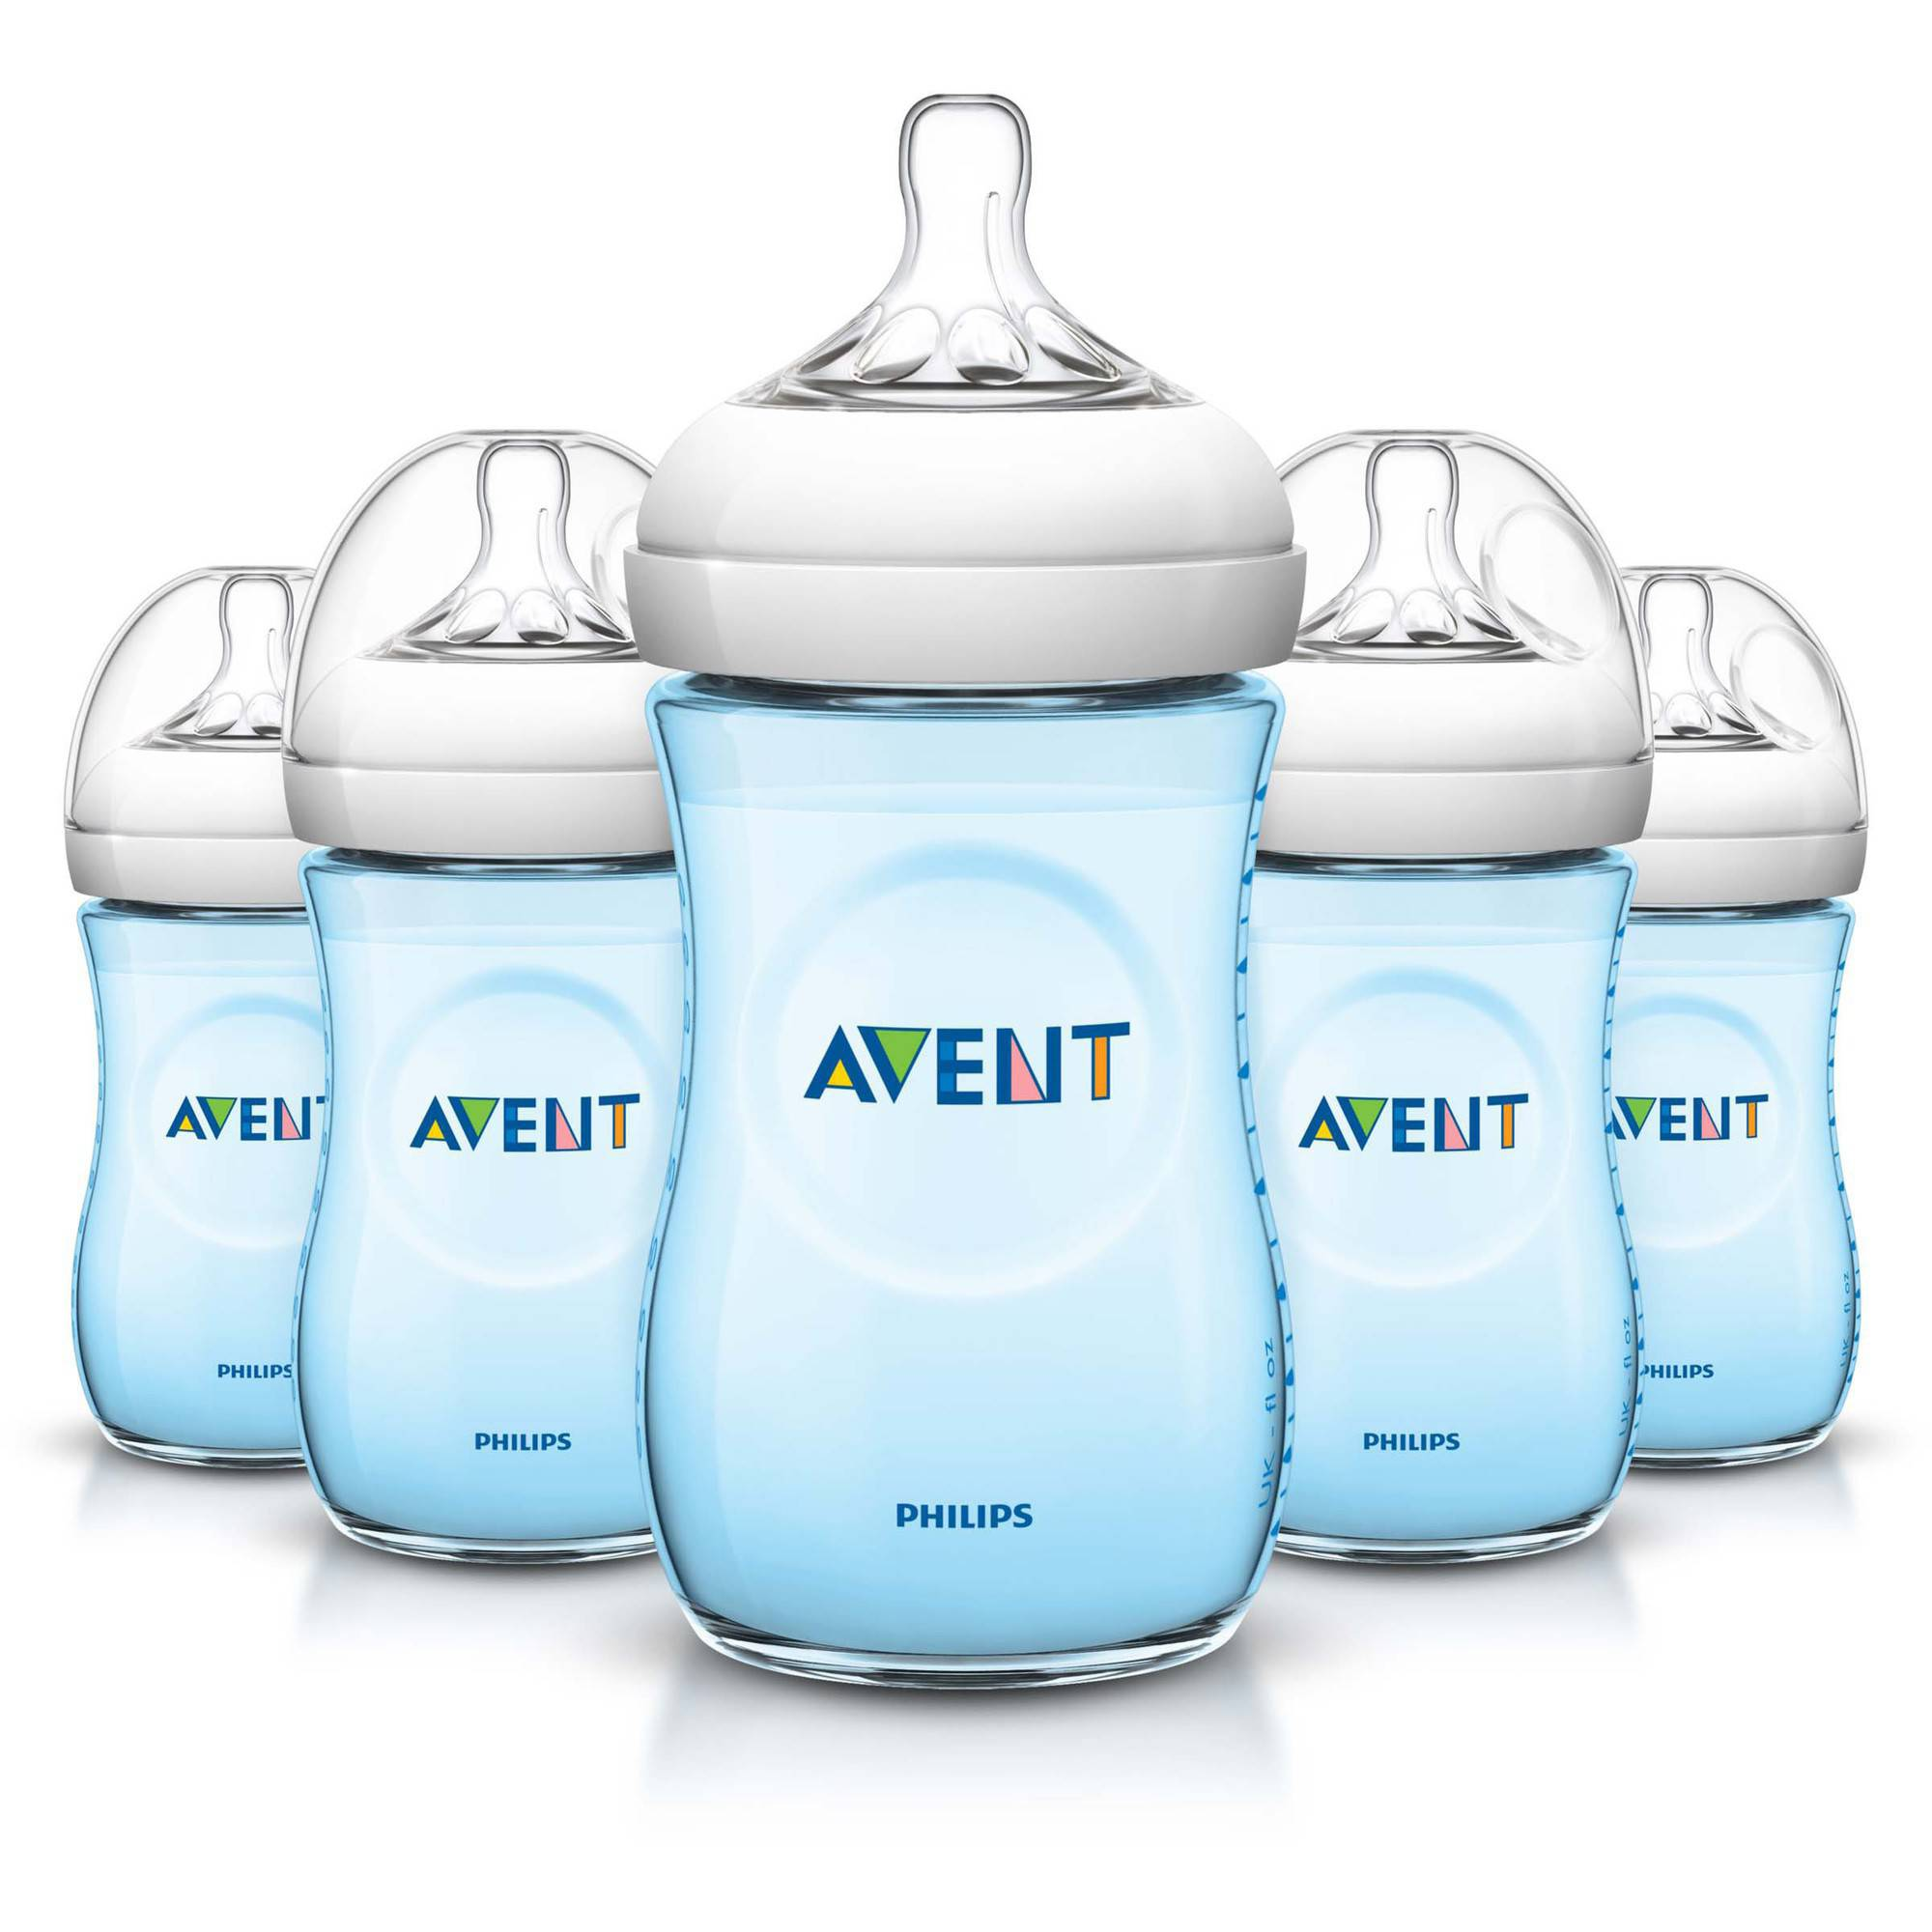 Philips Avent BPA Free Natural Blue Baby Bottles, 9 Ounce, 5 Pack by Philips